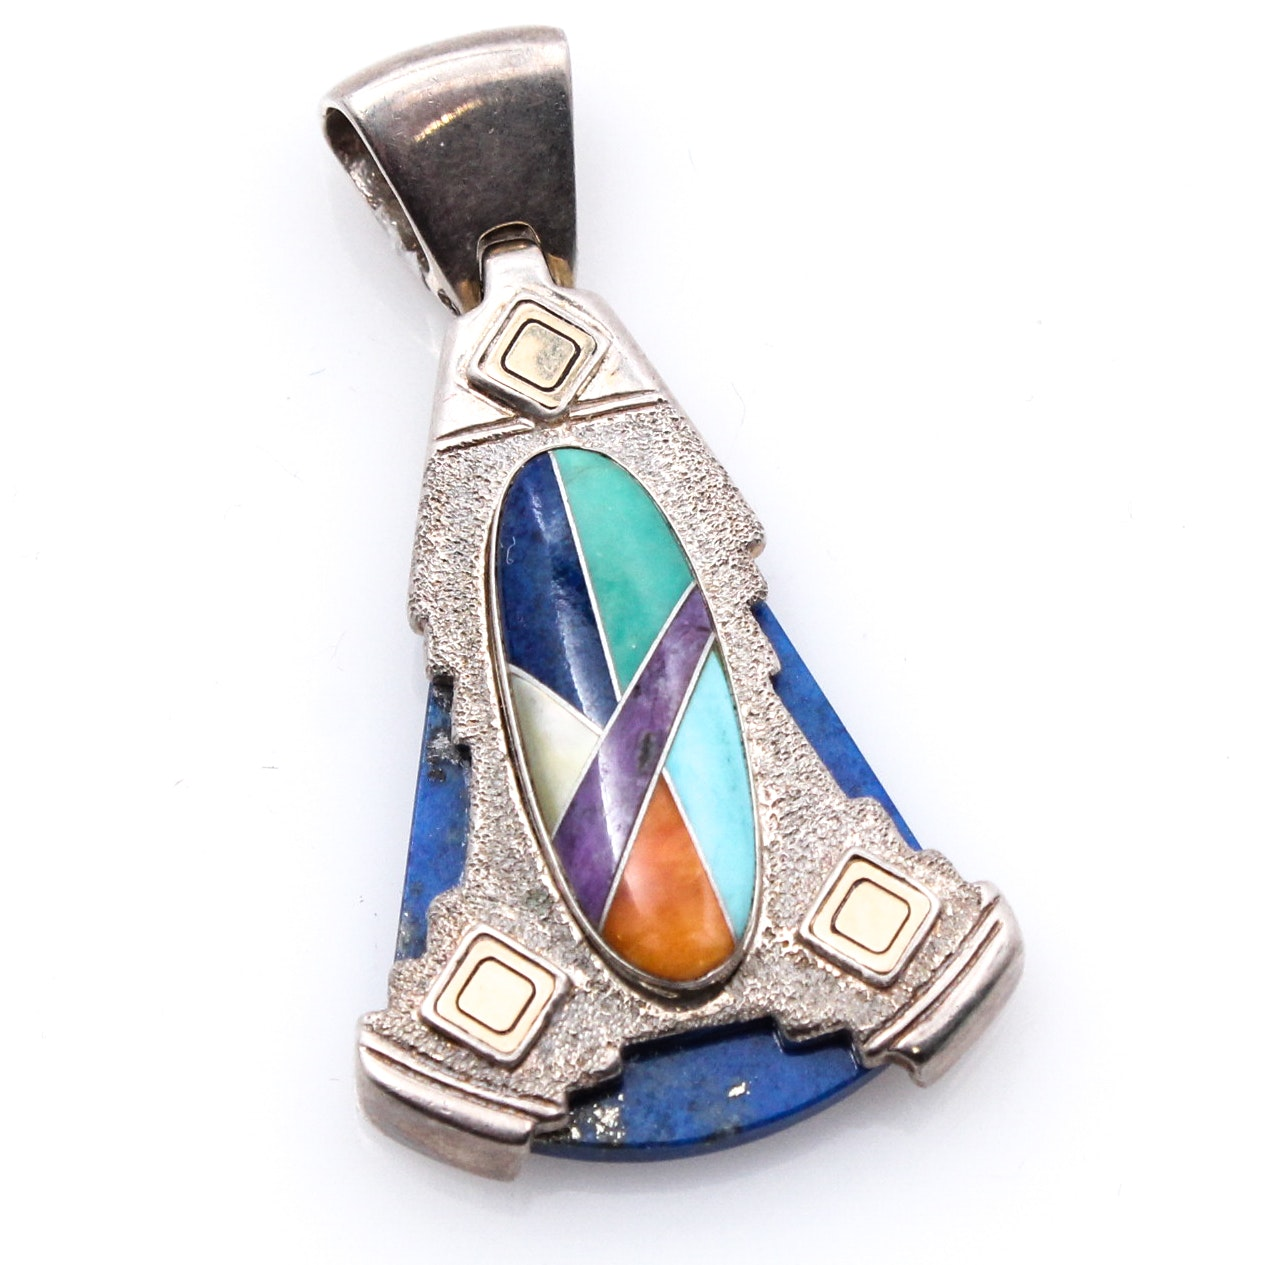 Relios Sterling Silver and 14K Yellow Gold Pendant with Lapis Lazuli